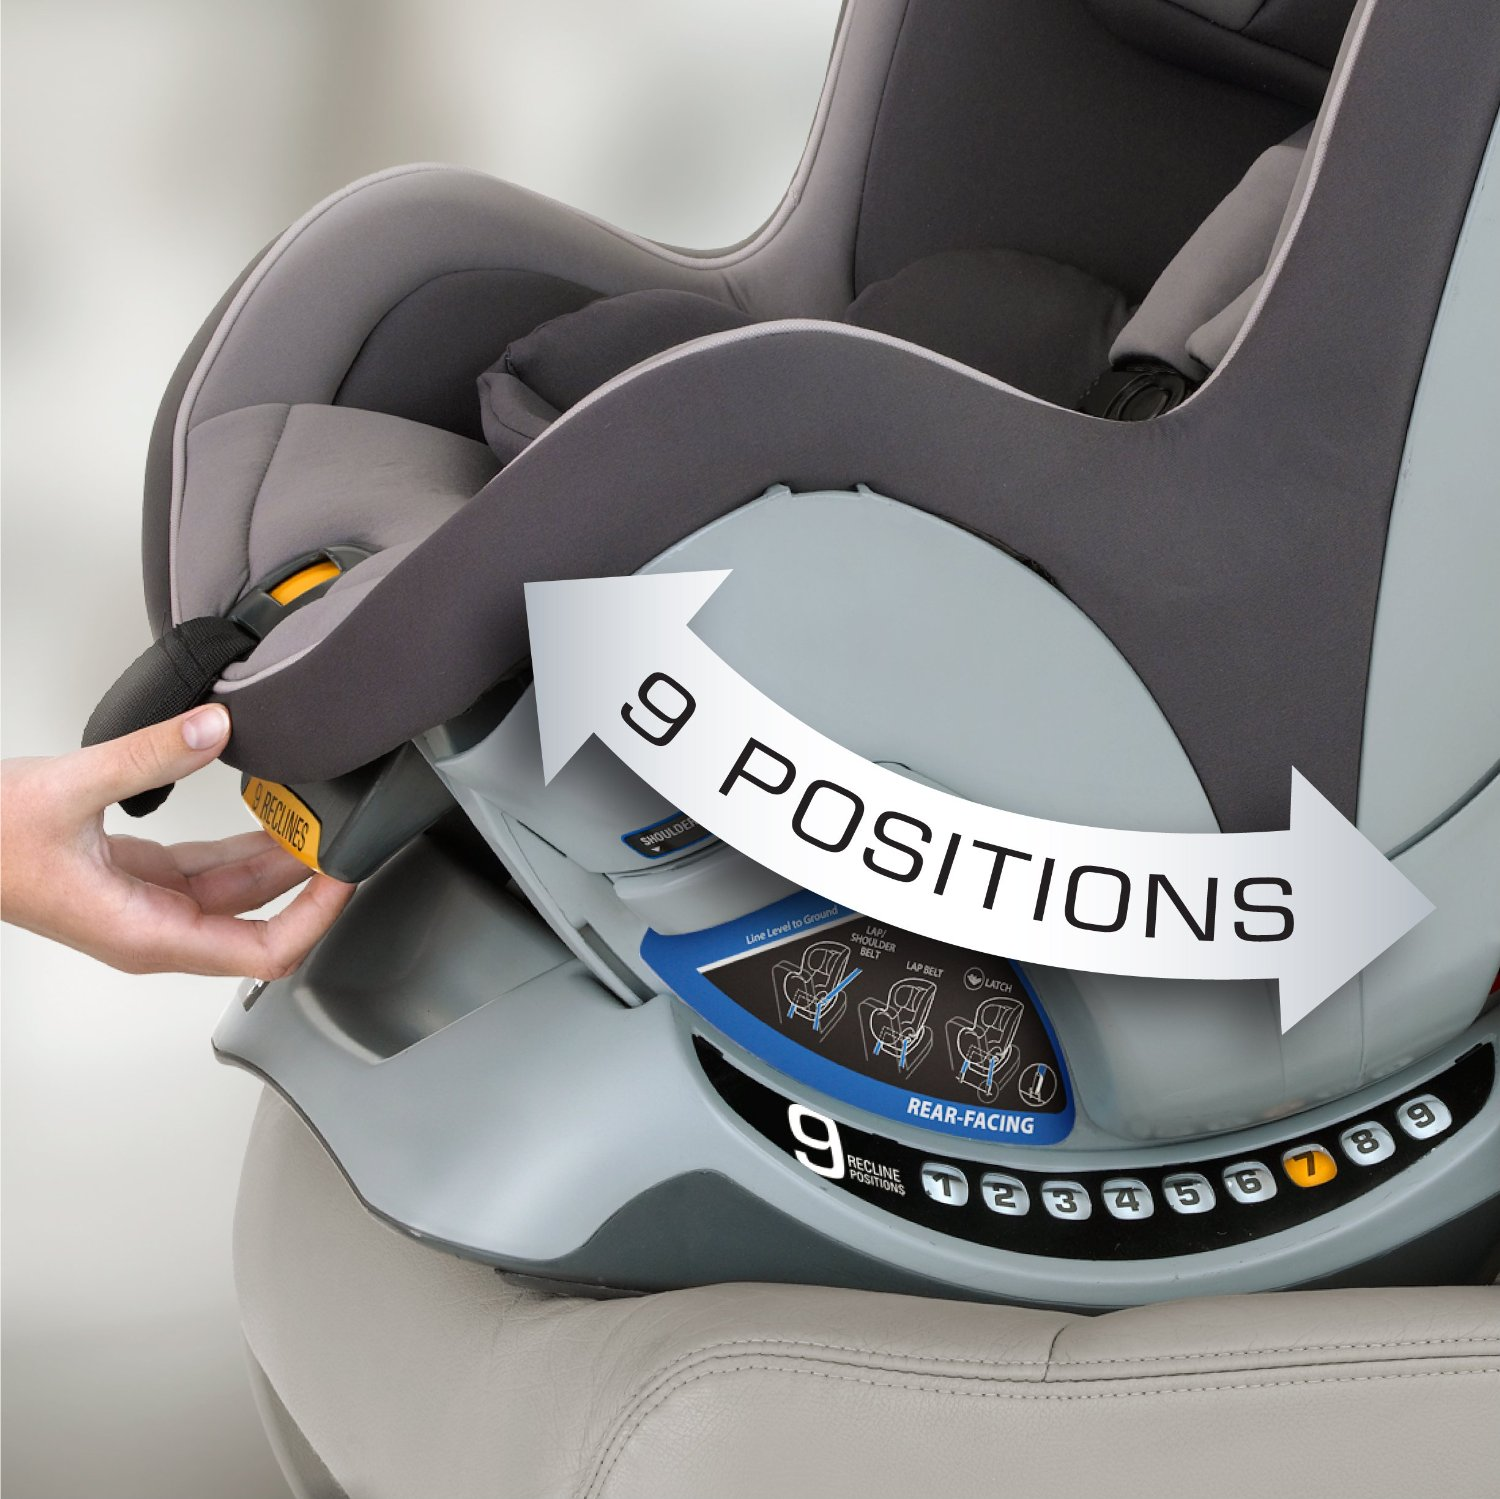 Chicco SuperCinch Chicco NextFit FF RF Chicco NextFit recline positions & CarseatBlog: The Most Trusted Source for Car Seat Reviews Ratings ... islam-shia.org